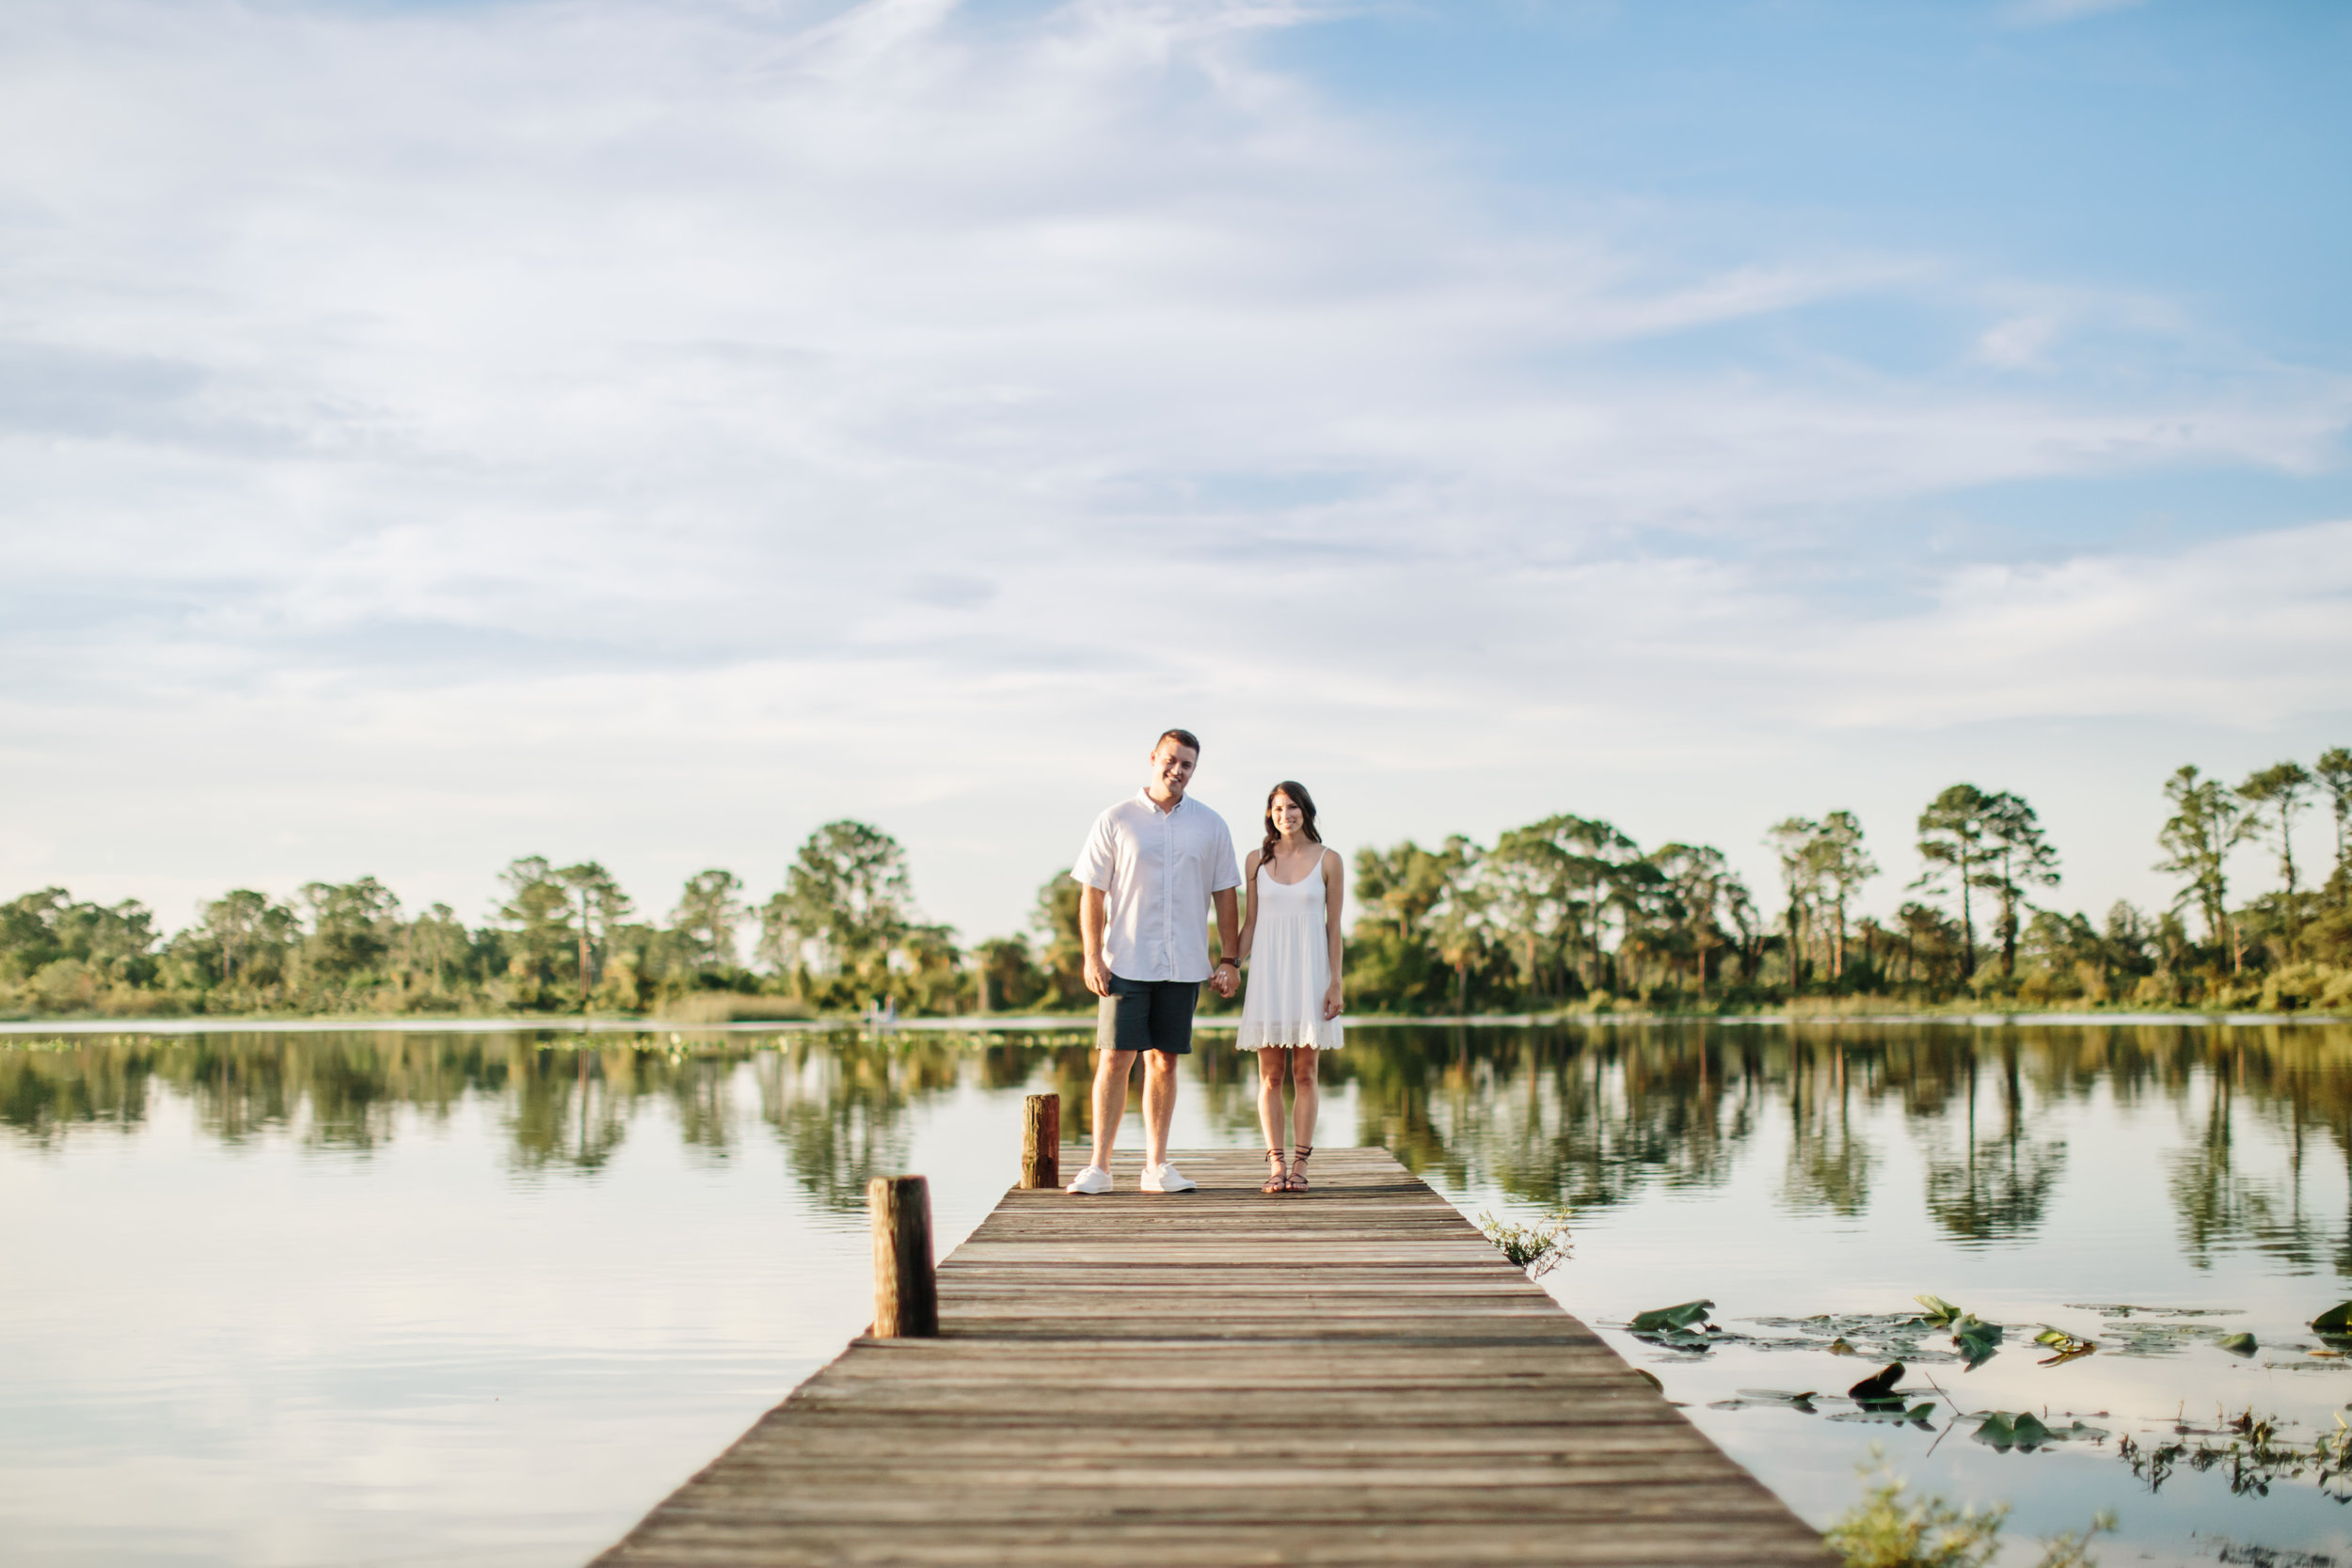 2018.08.10 Jay and Lauren Engagement Elopement Session at Fox Lake Park Titusville THE HORNES-126.jpg